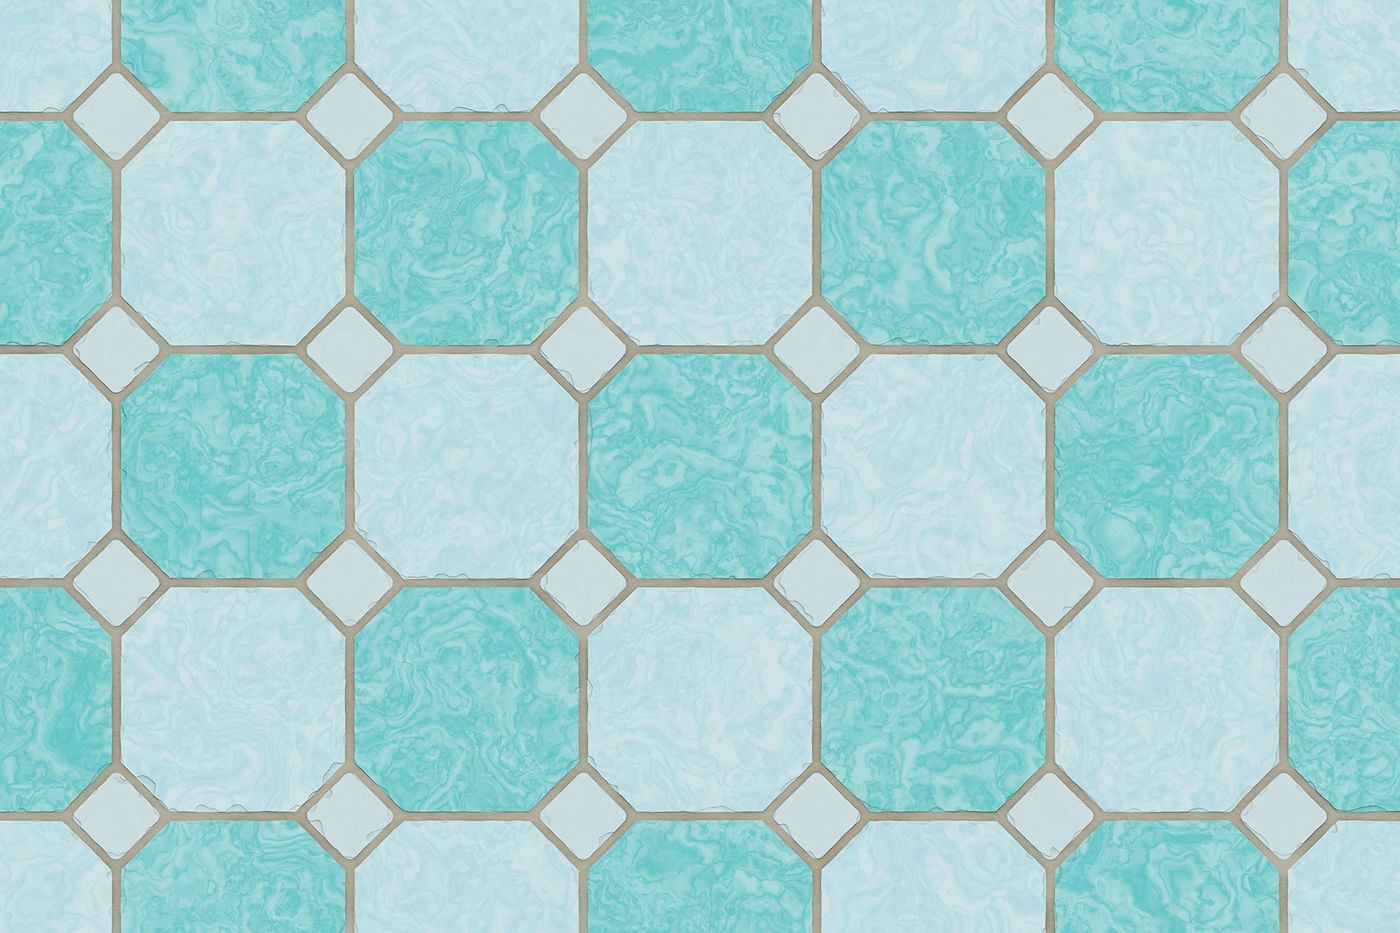 10 classic floor tile textures by